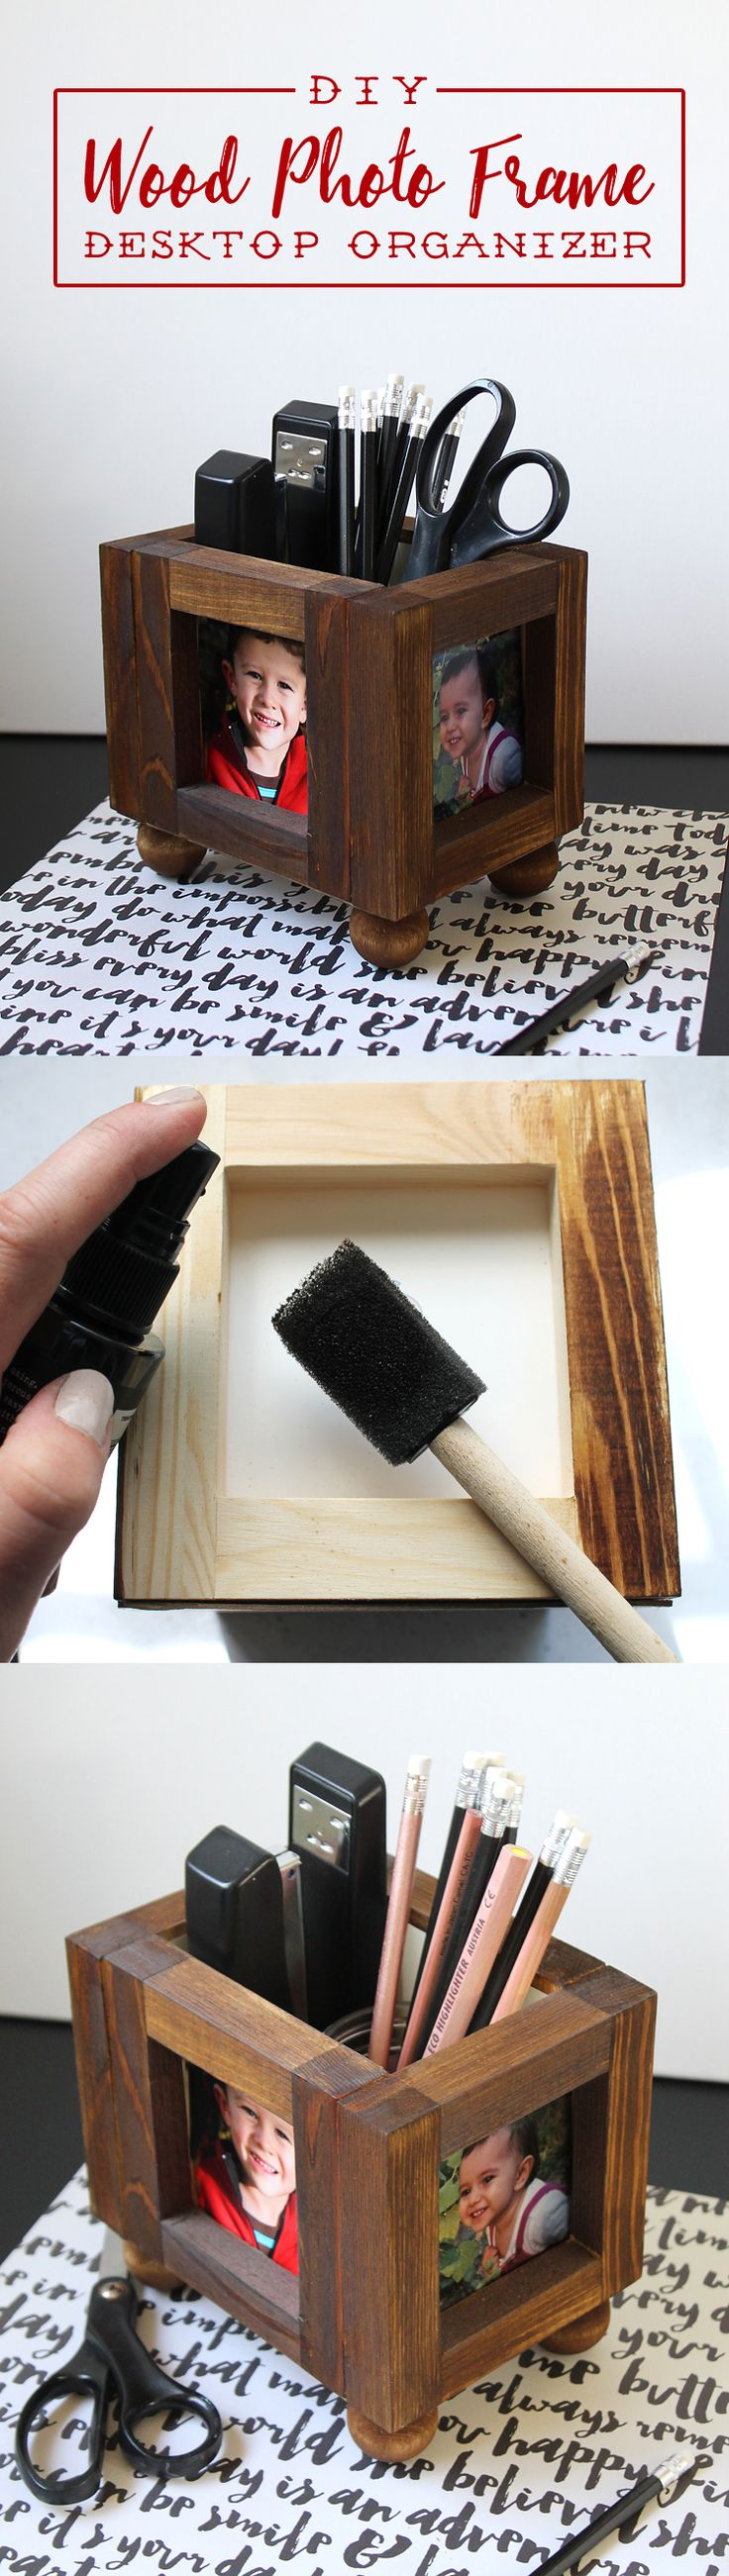 This rustic wood photo desktop office organizer is a super easy project. No cutting wood required! It would be such a cute gift idea for a grandparent or aunt or uncle.  A great way to gift pictures of your kids!